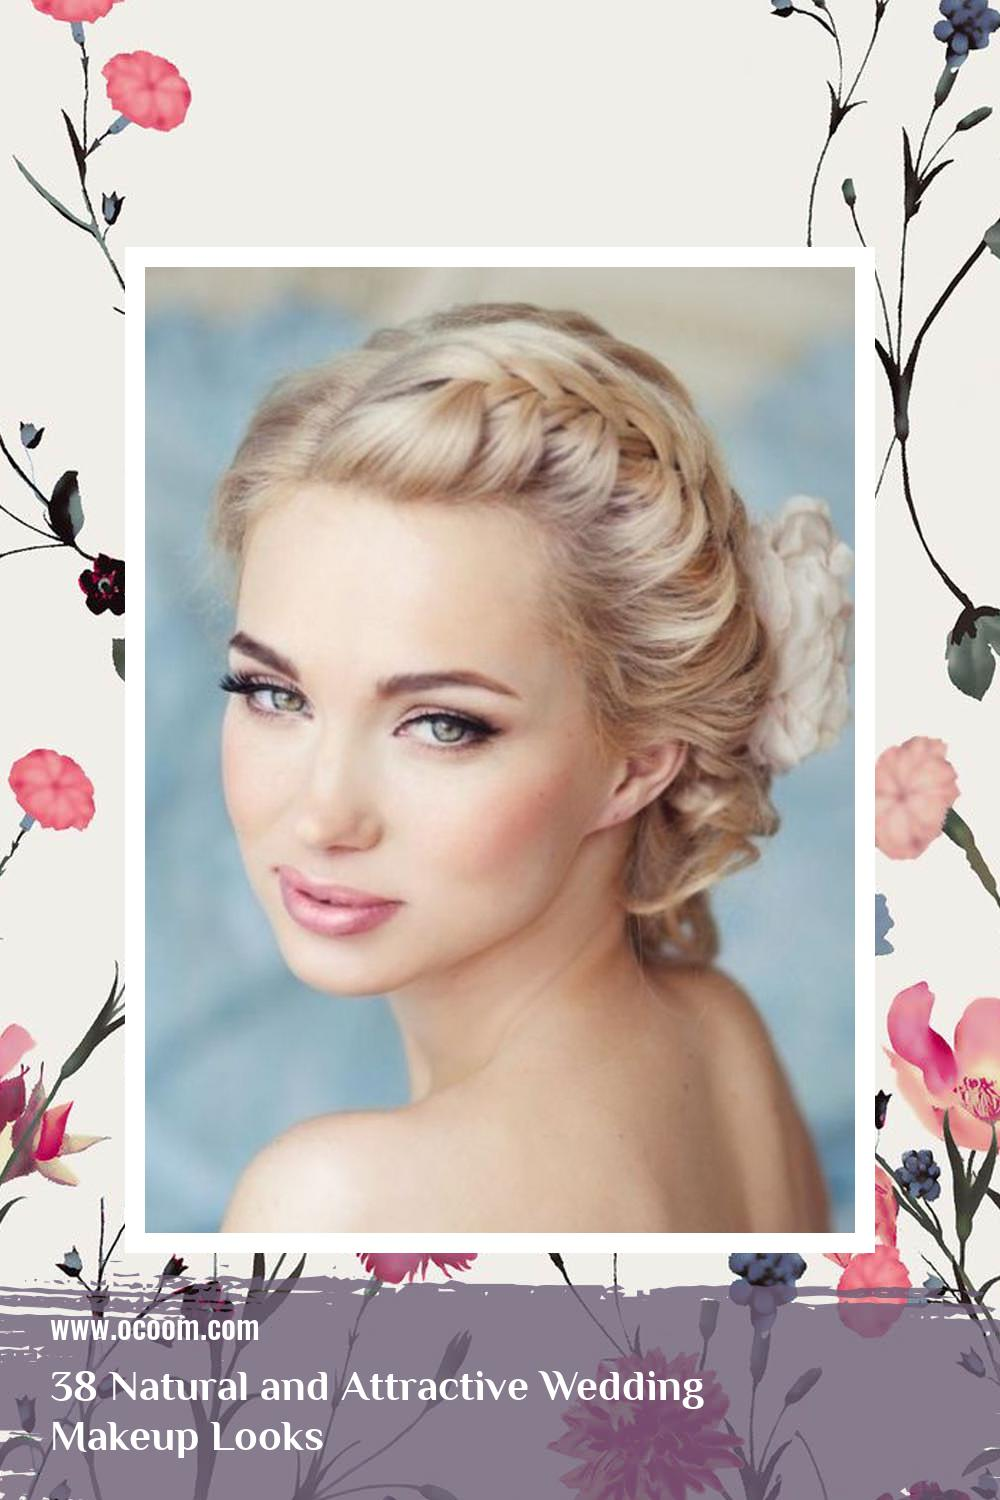 38 Natural and Attractive Wedding Makeup Looks 2